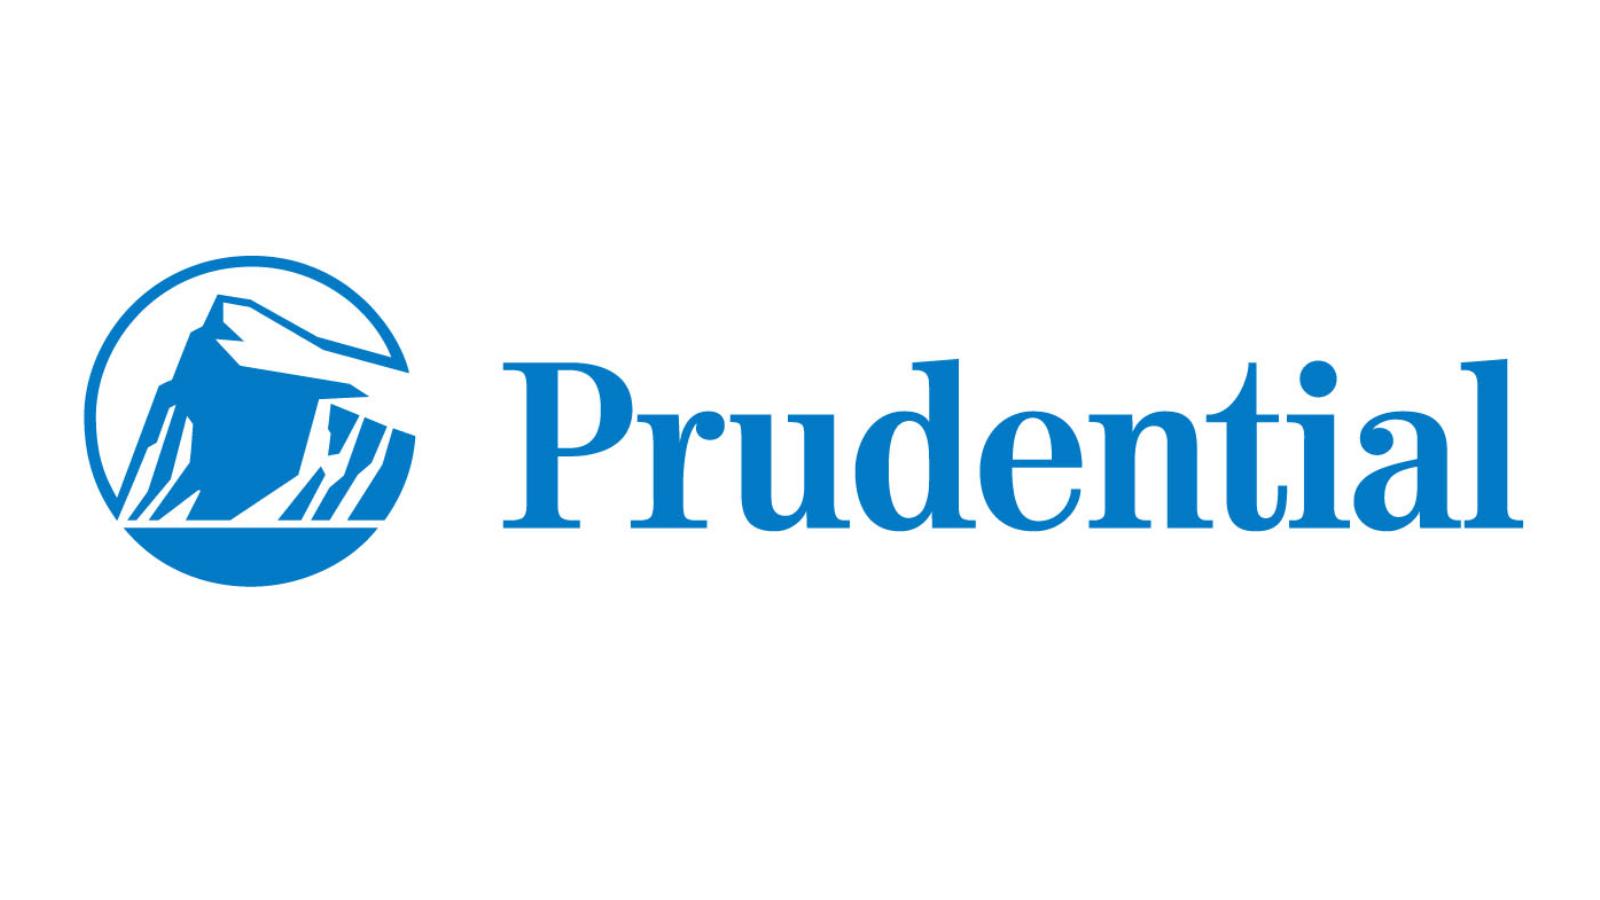 Prudential Financial